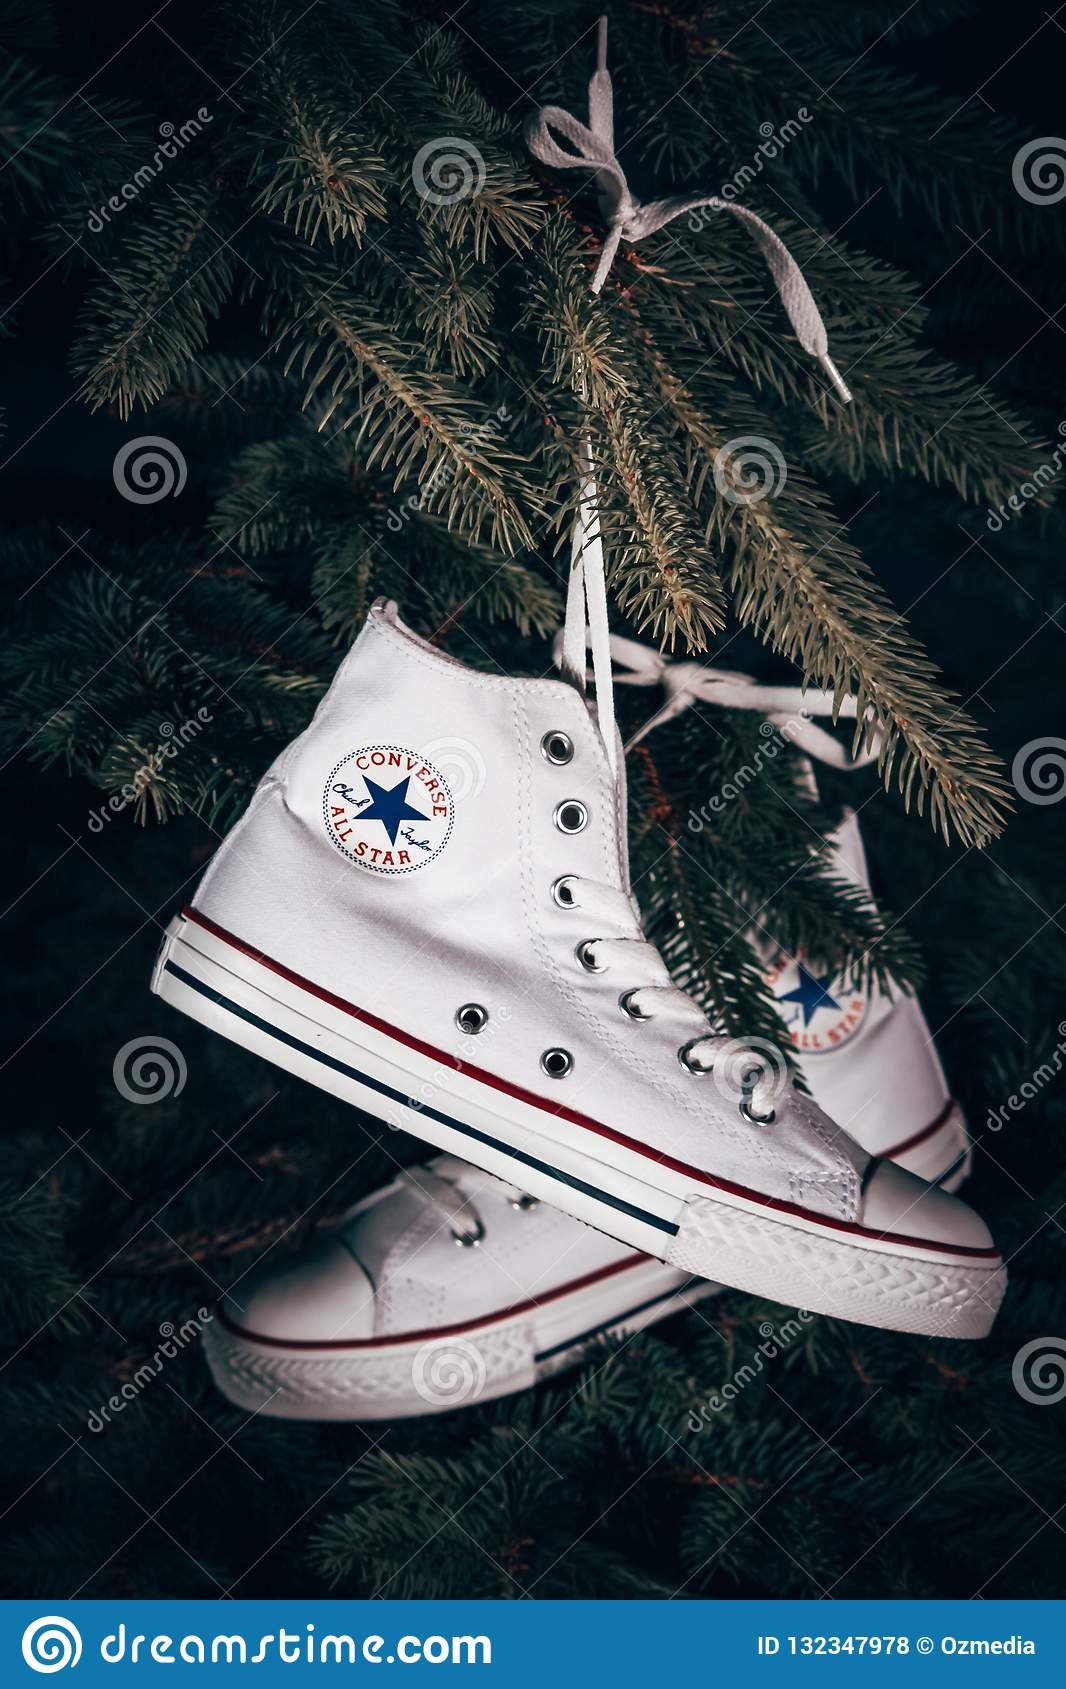 97f4d0f10a82 Converse Sports Shoes Hanged On Pine Tree Editorial Stock Photo ...